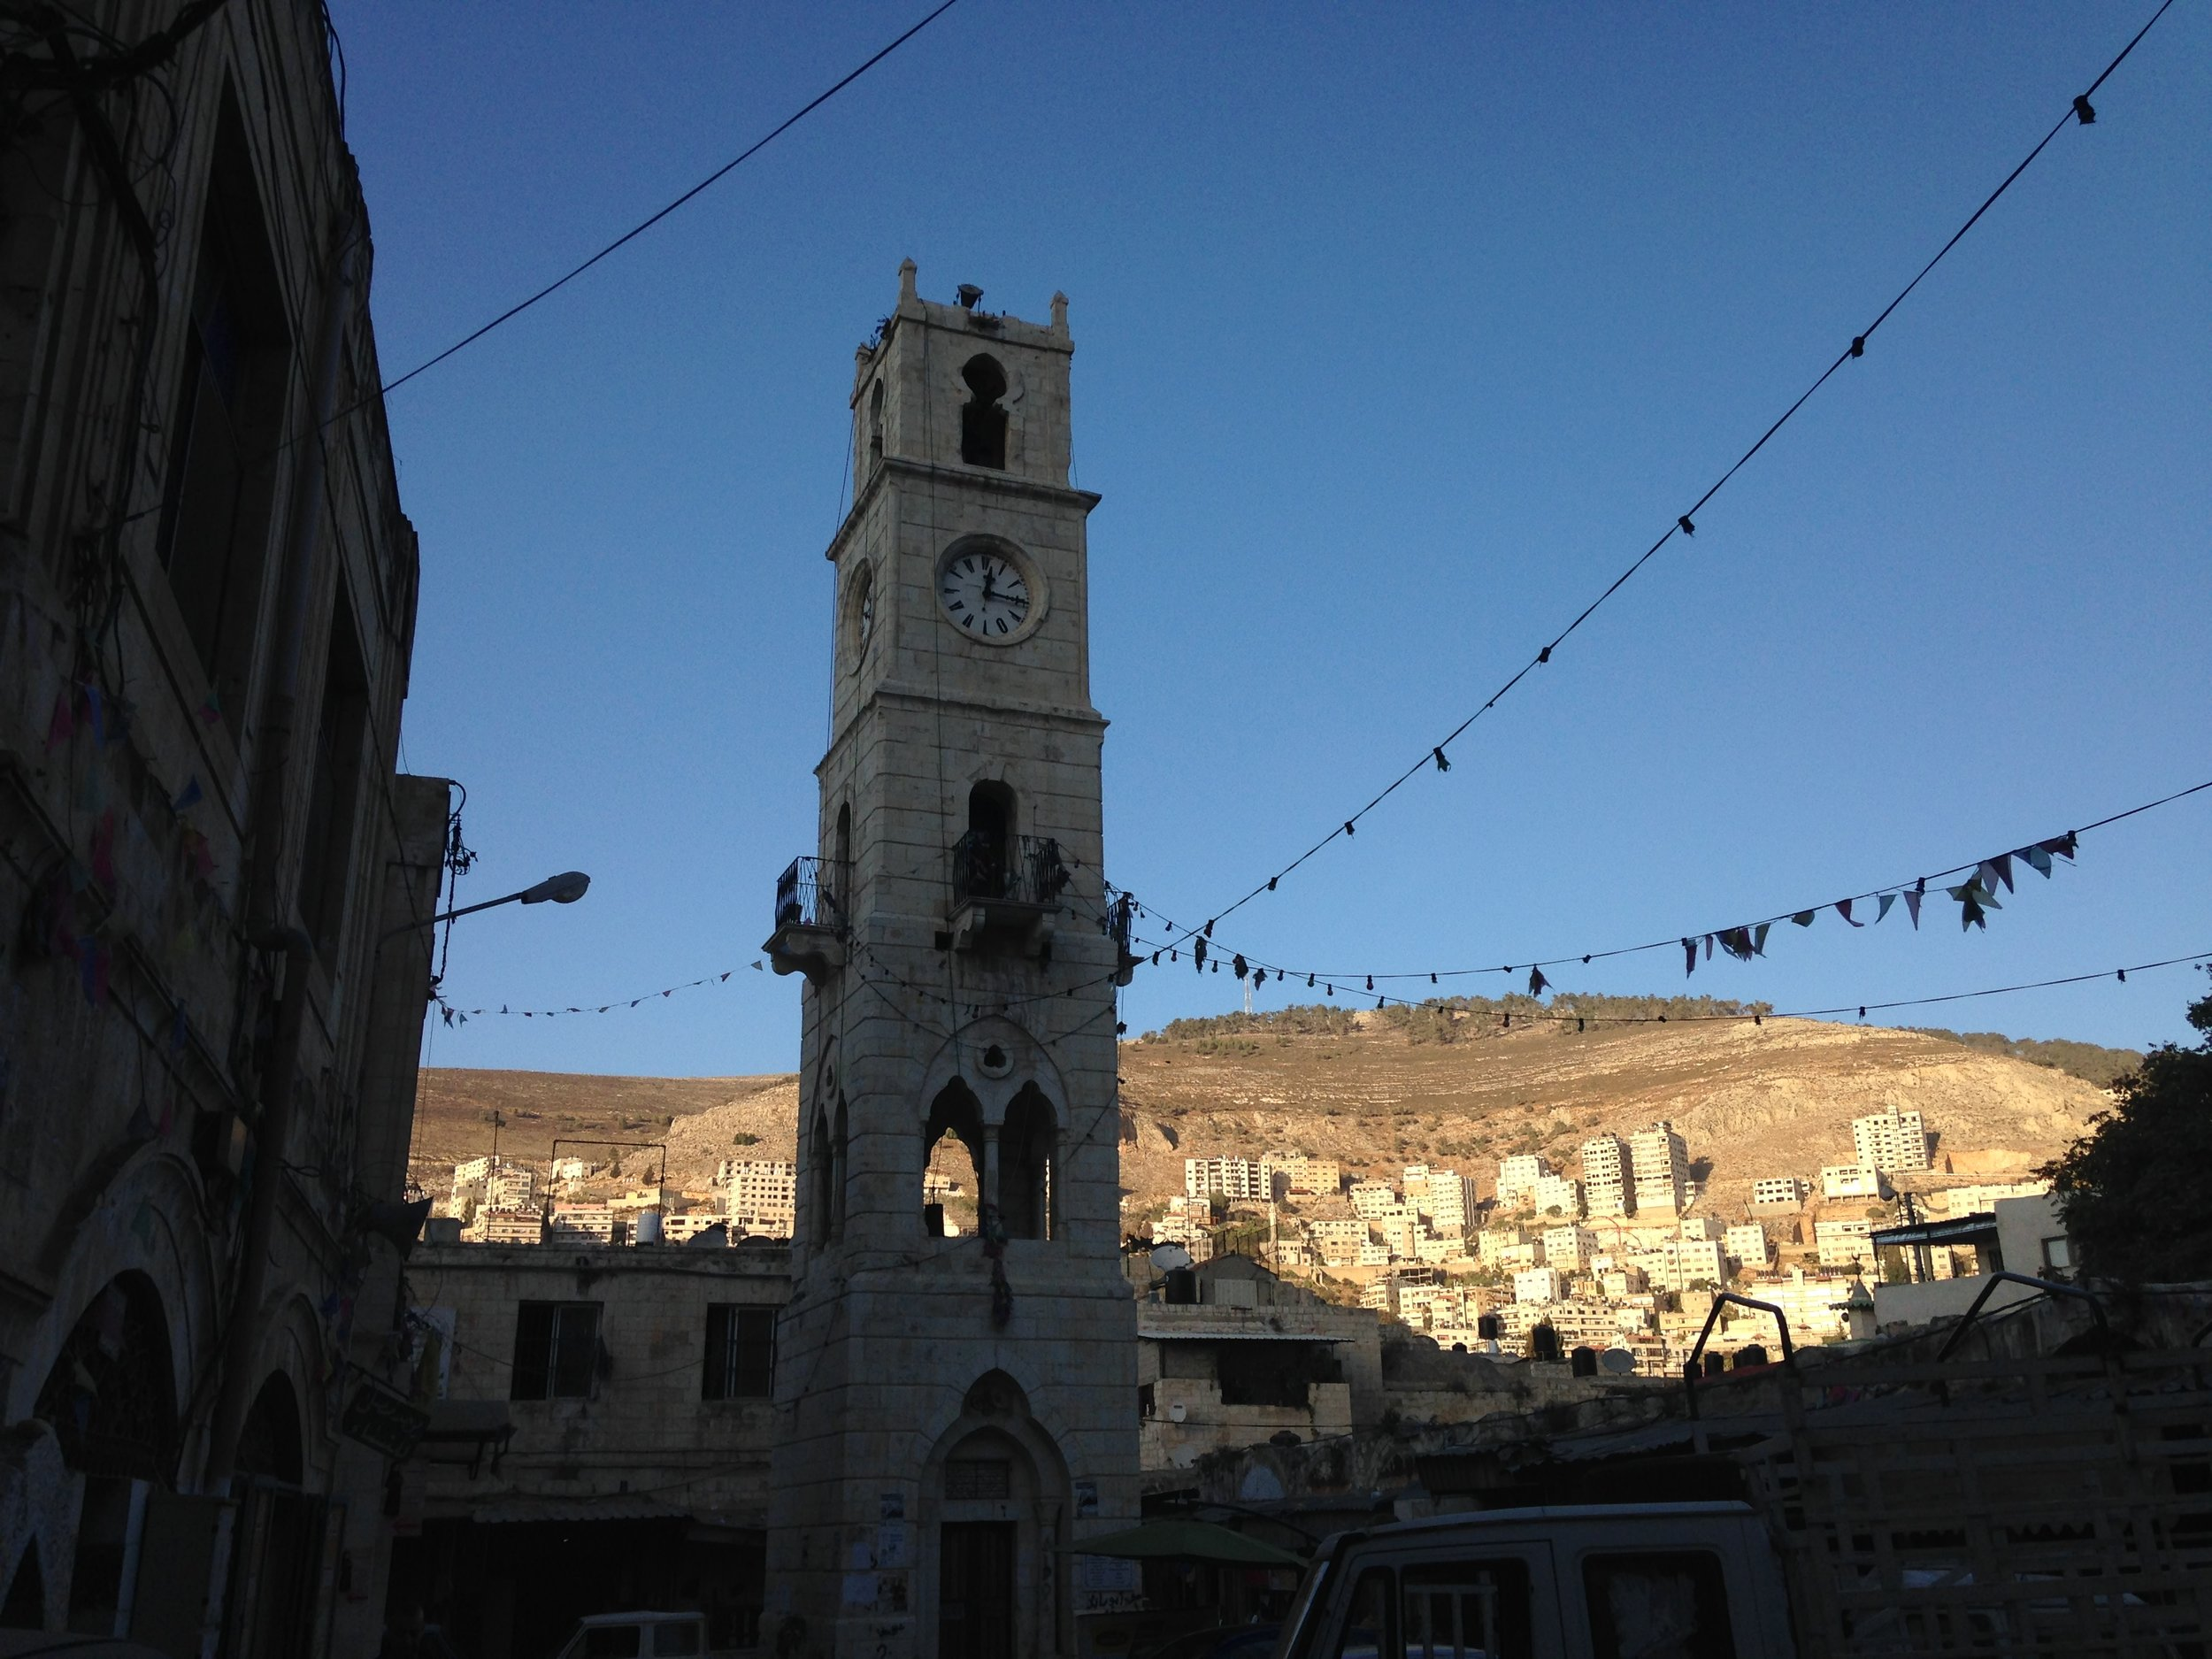 The clock tower (old city)